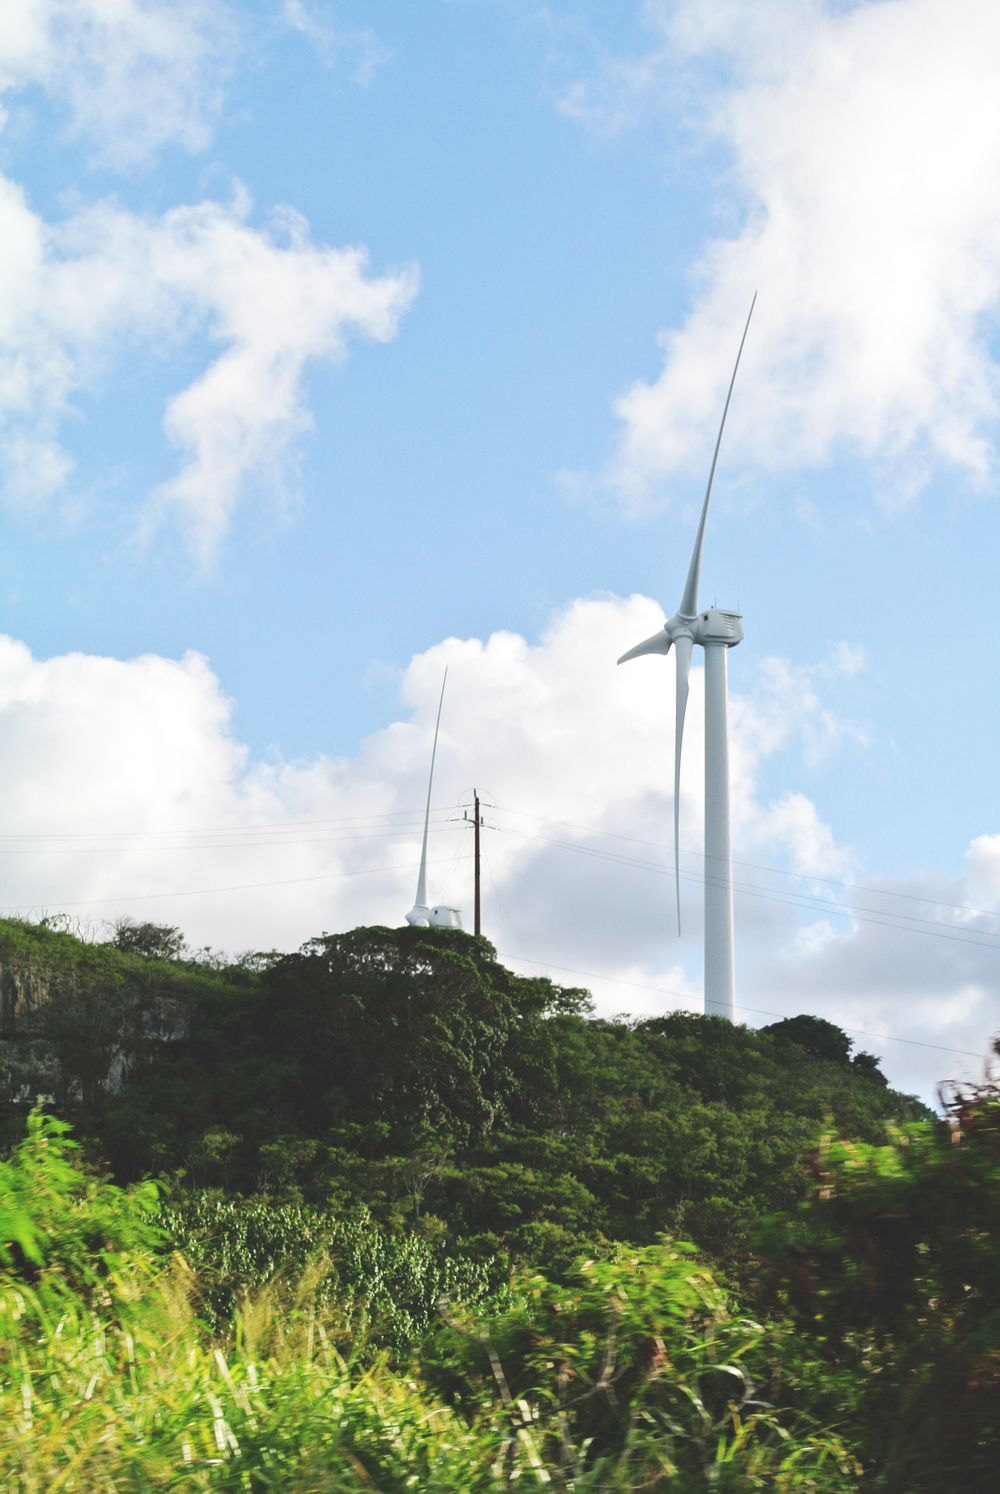 On the road back from the falls: Kahuku Wind is comprised of 12 wind turbines, with a total generating  capacity of 30 MW. The project can produce enough power for up to 7,700  homes on Oahu.